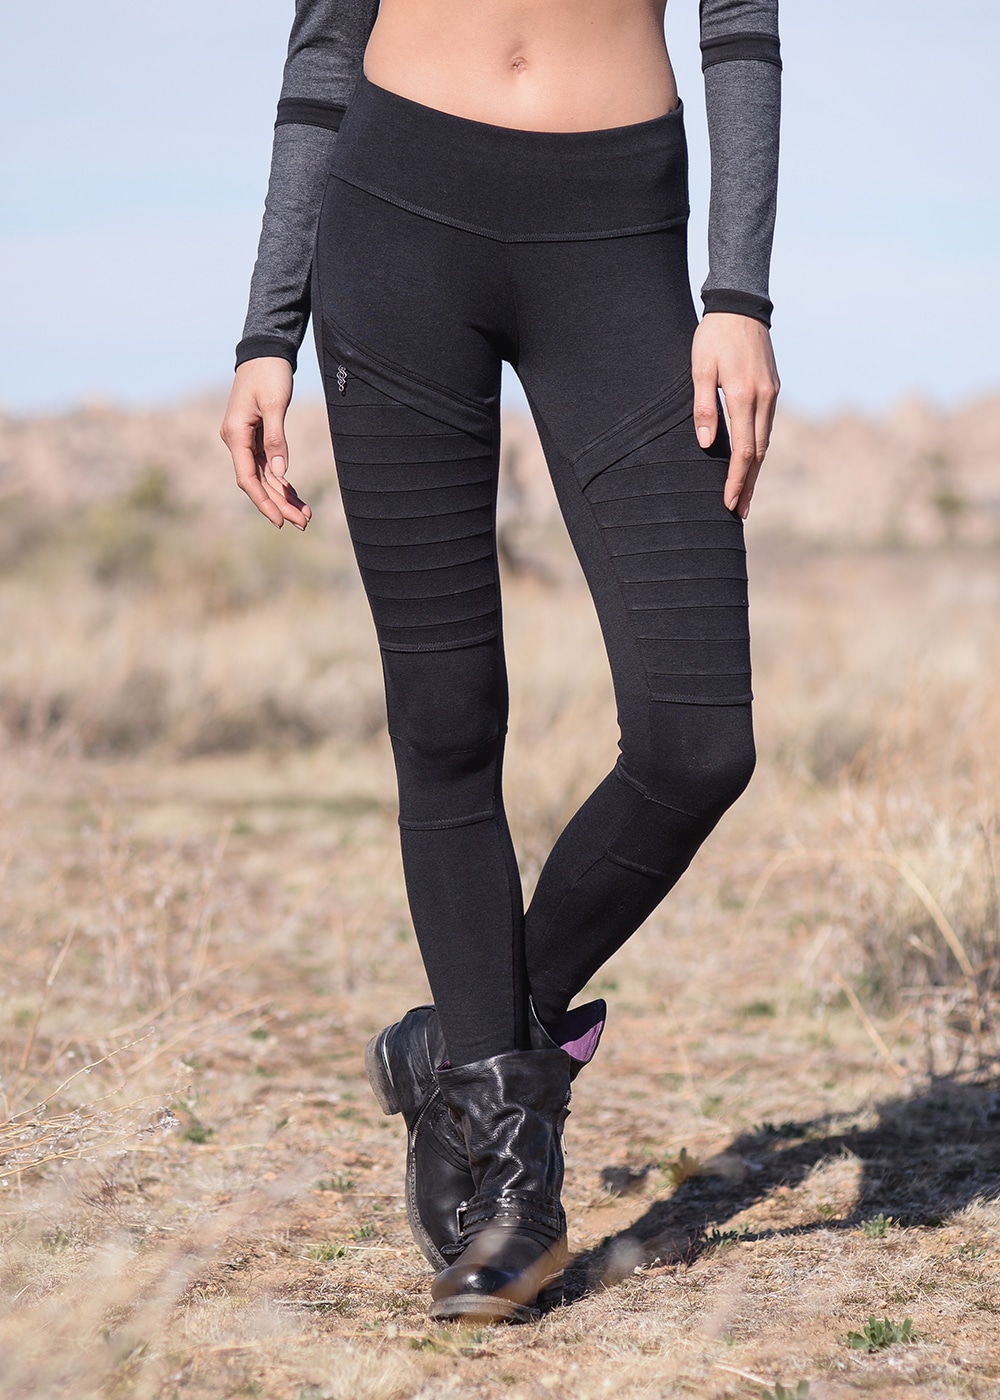 Bamboo and Organic Cotton Recluse Leggings in Black by Nomads Hemp Wear